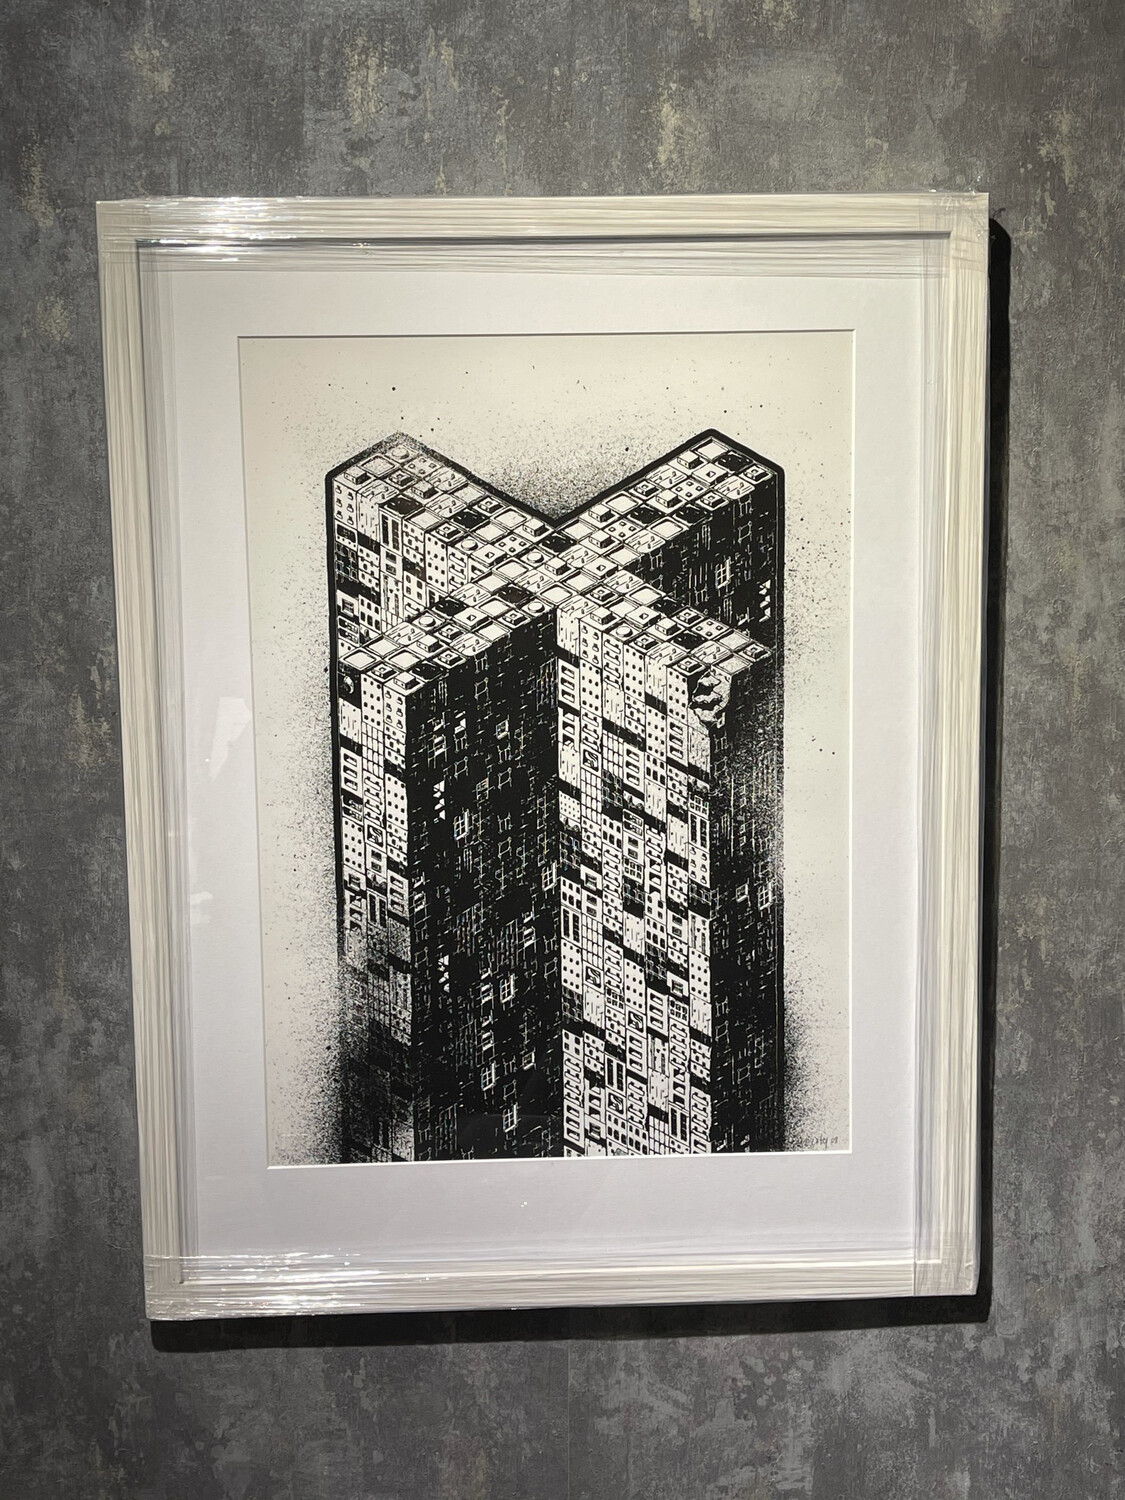 M - City title: X - Comes With White Frame & Art Glass - Geir's Rammeservice